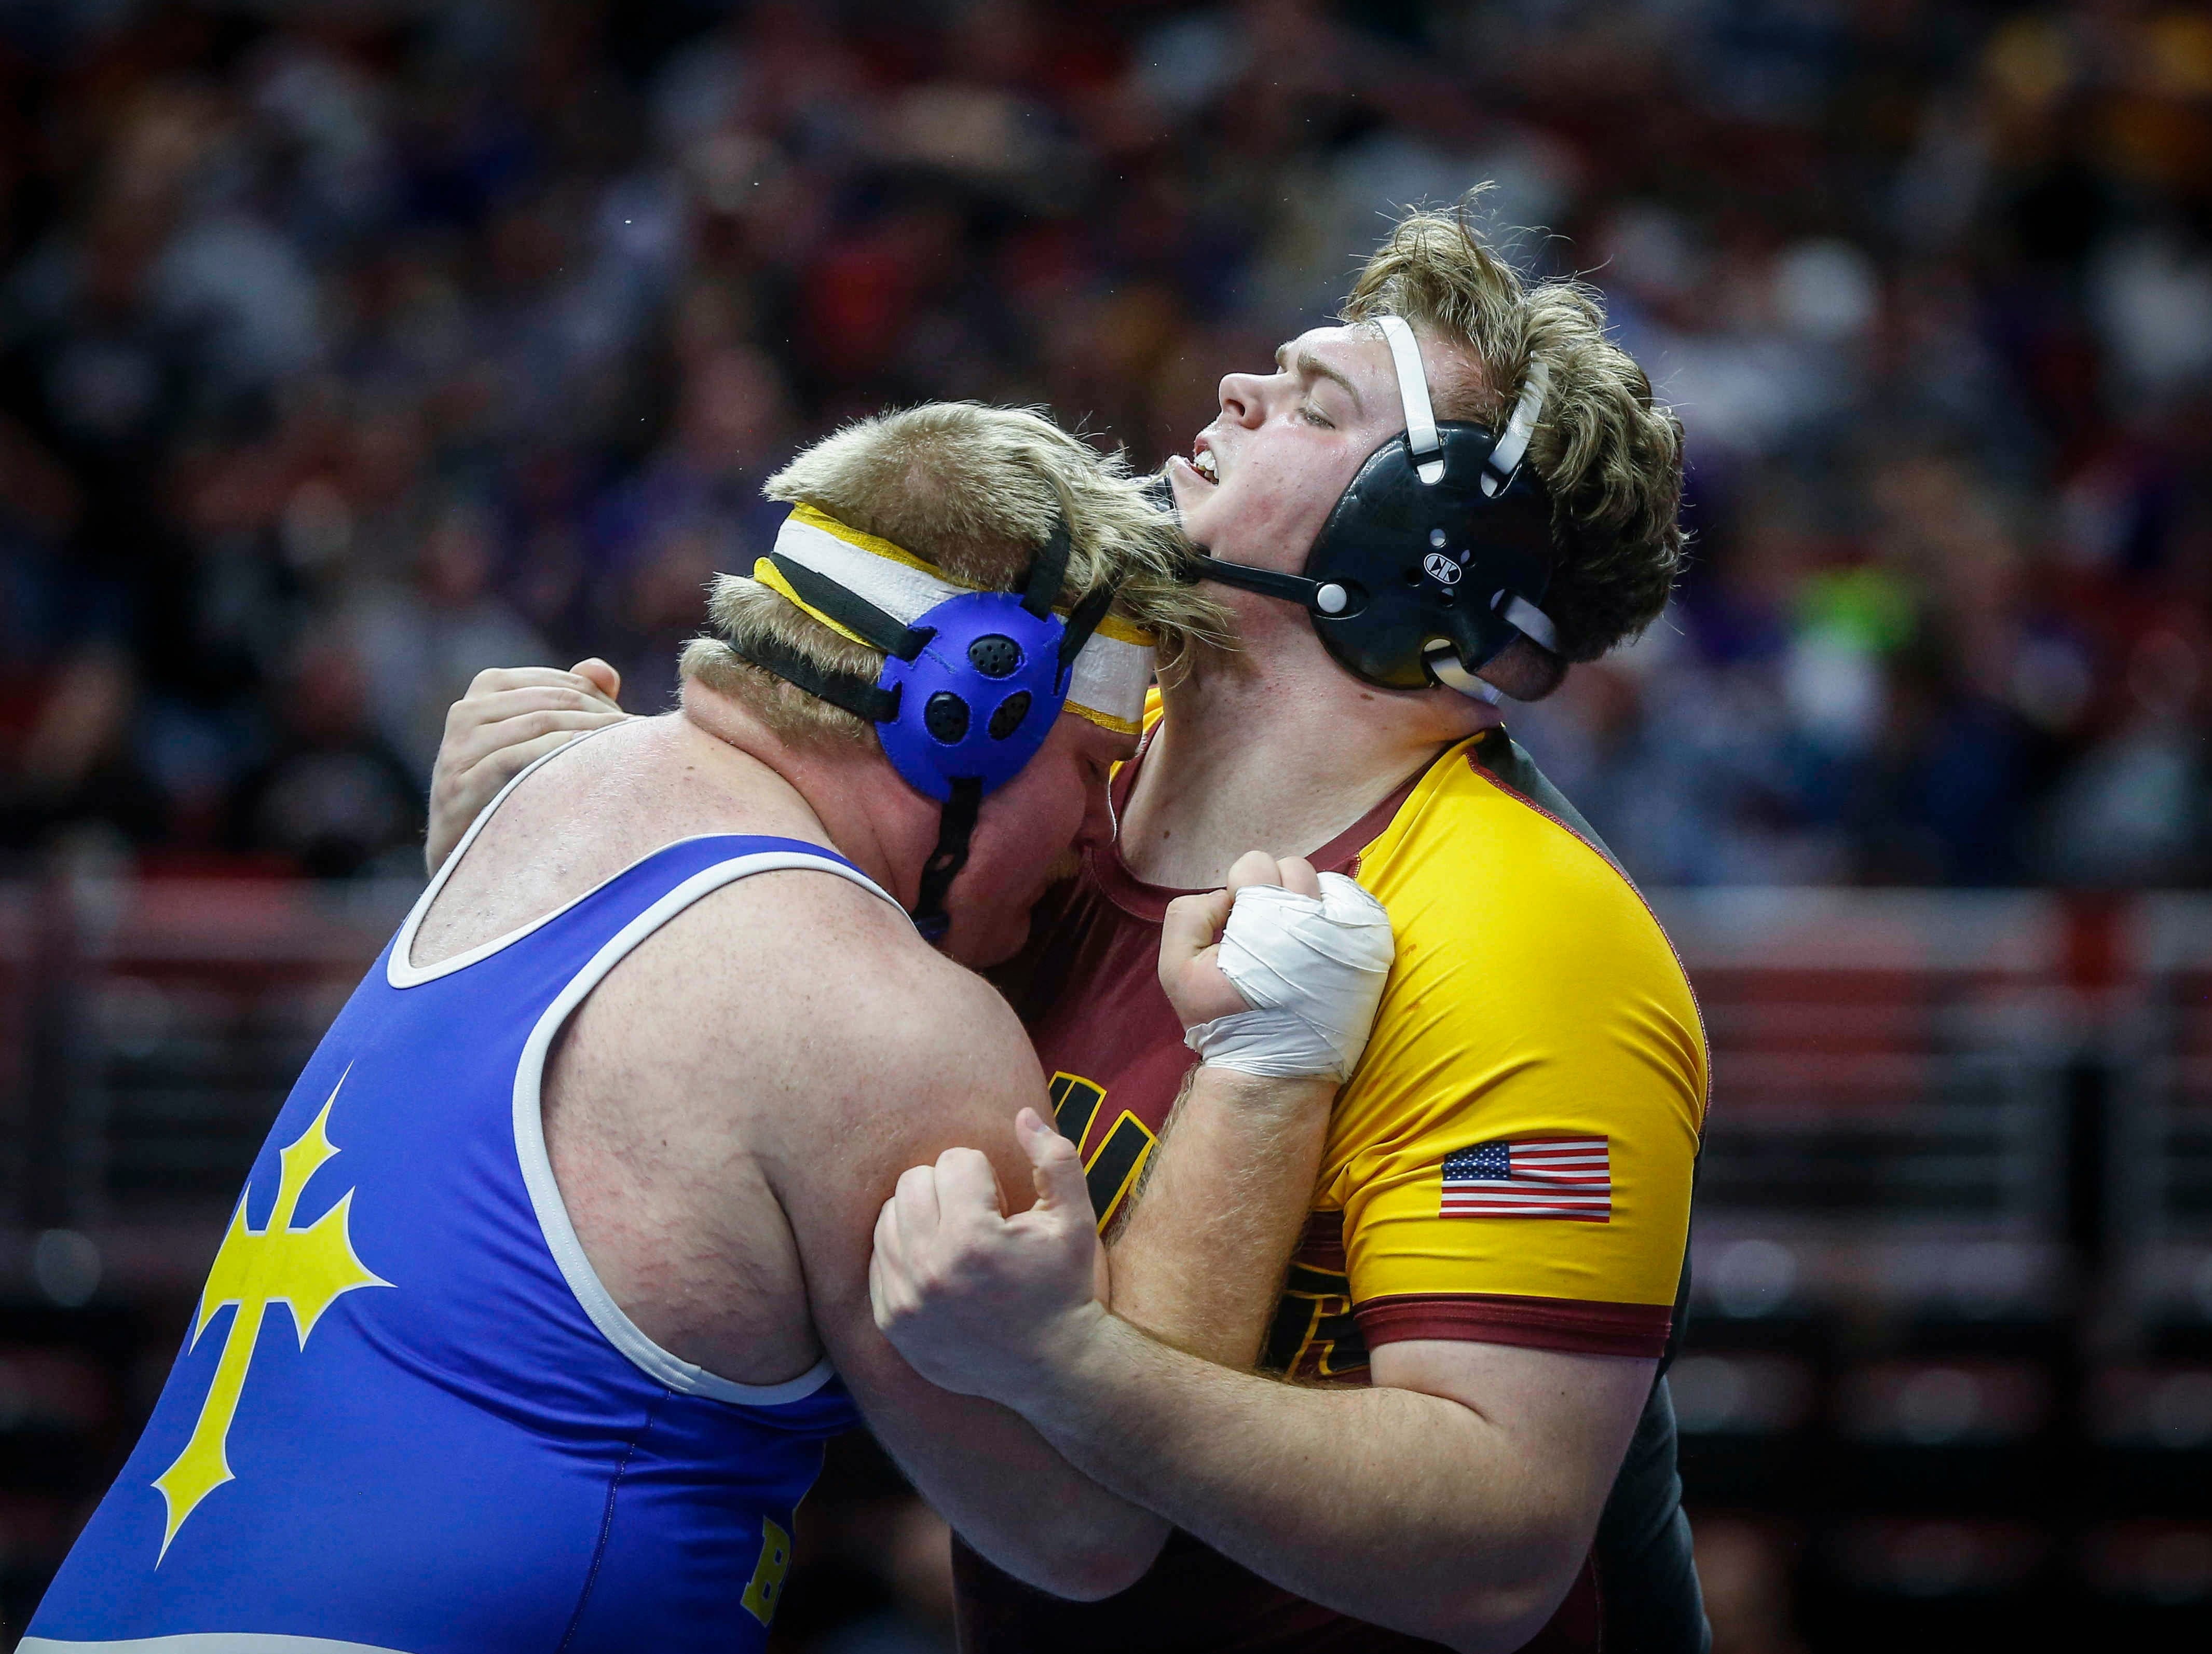 Denver senior Brock Farley, right, clashes with Don Bosco senior Noah Pittman in their match at 285 pounds during the opening round of Class 1A matches during the Iowa high school state wrestling tournament at Wells Fargo Arena on Thursday, Feb. 14, 2019, in Des Moines.